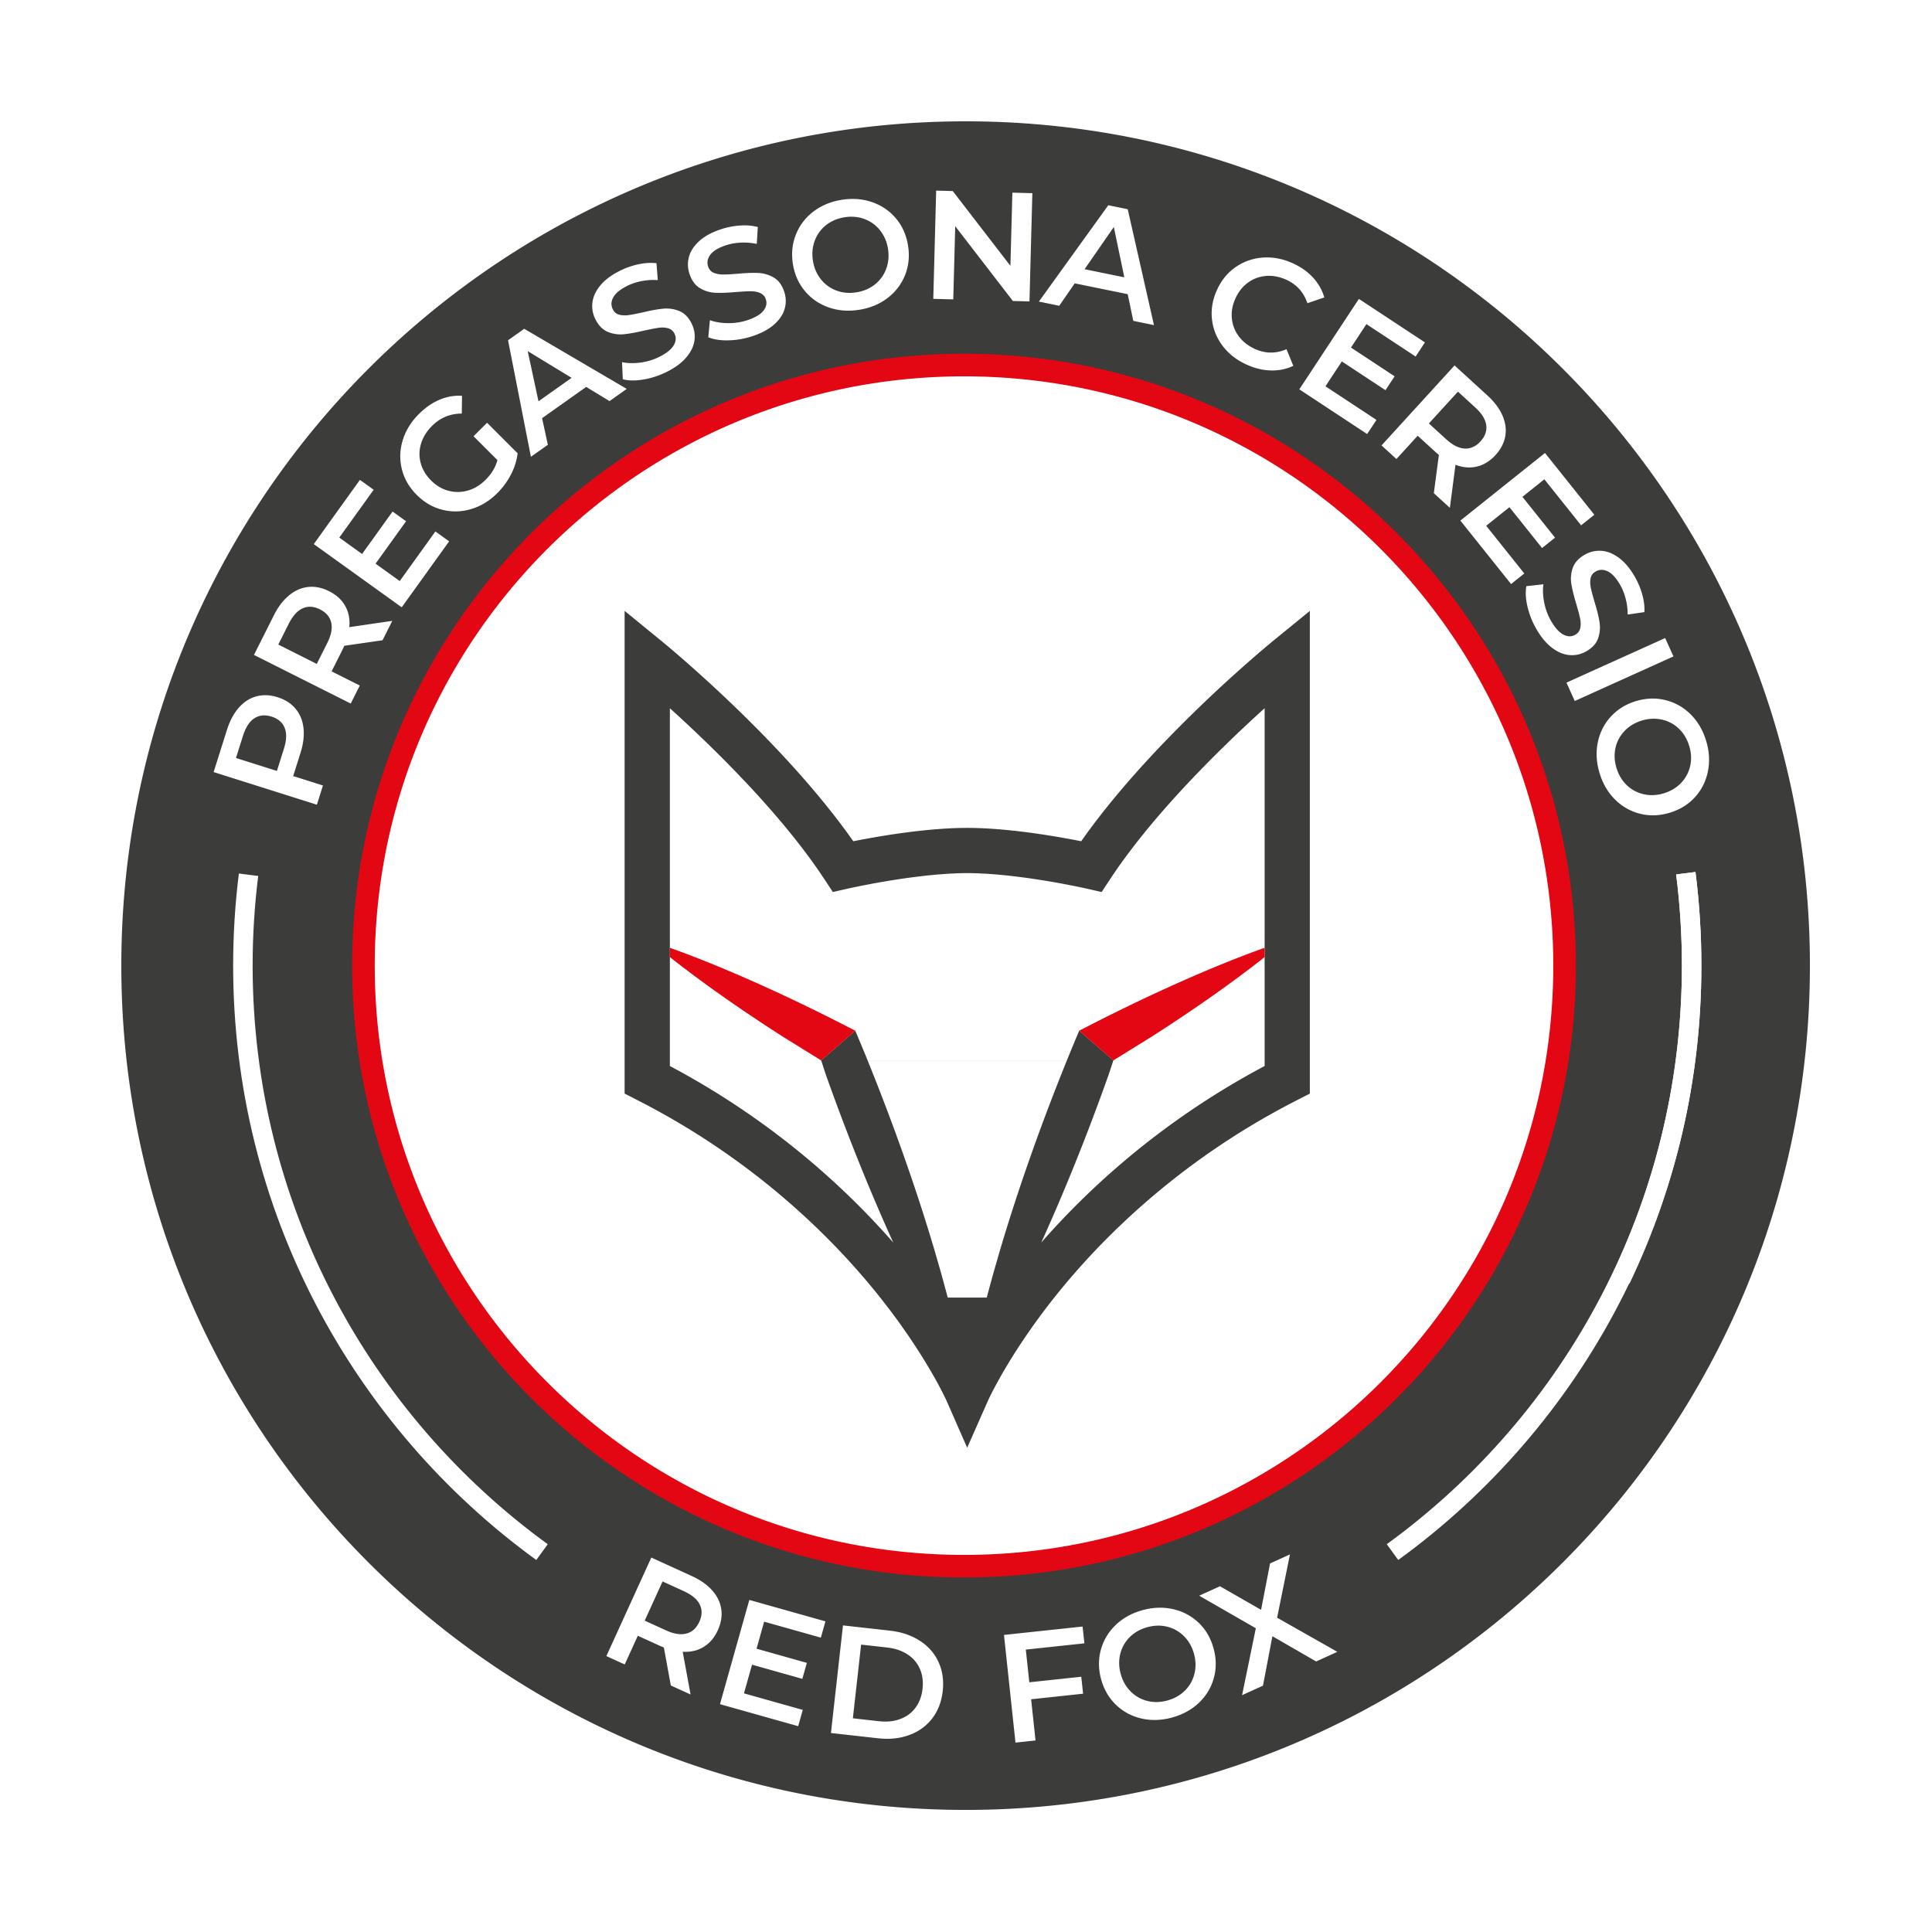 Hockey Club Pregassona Ceresio RedFox